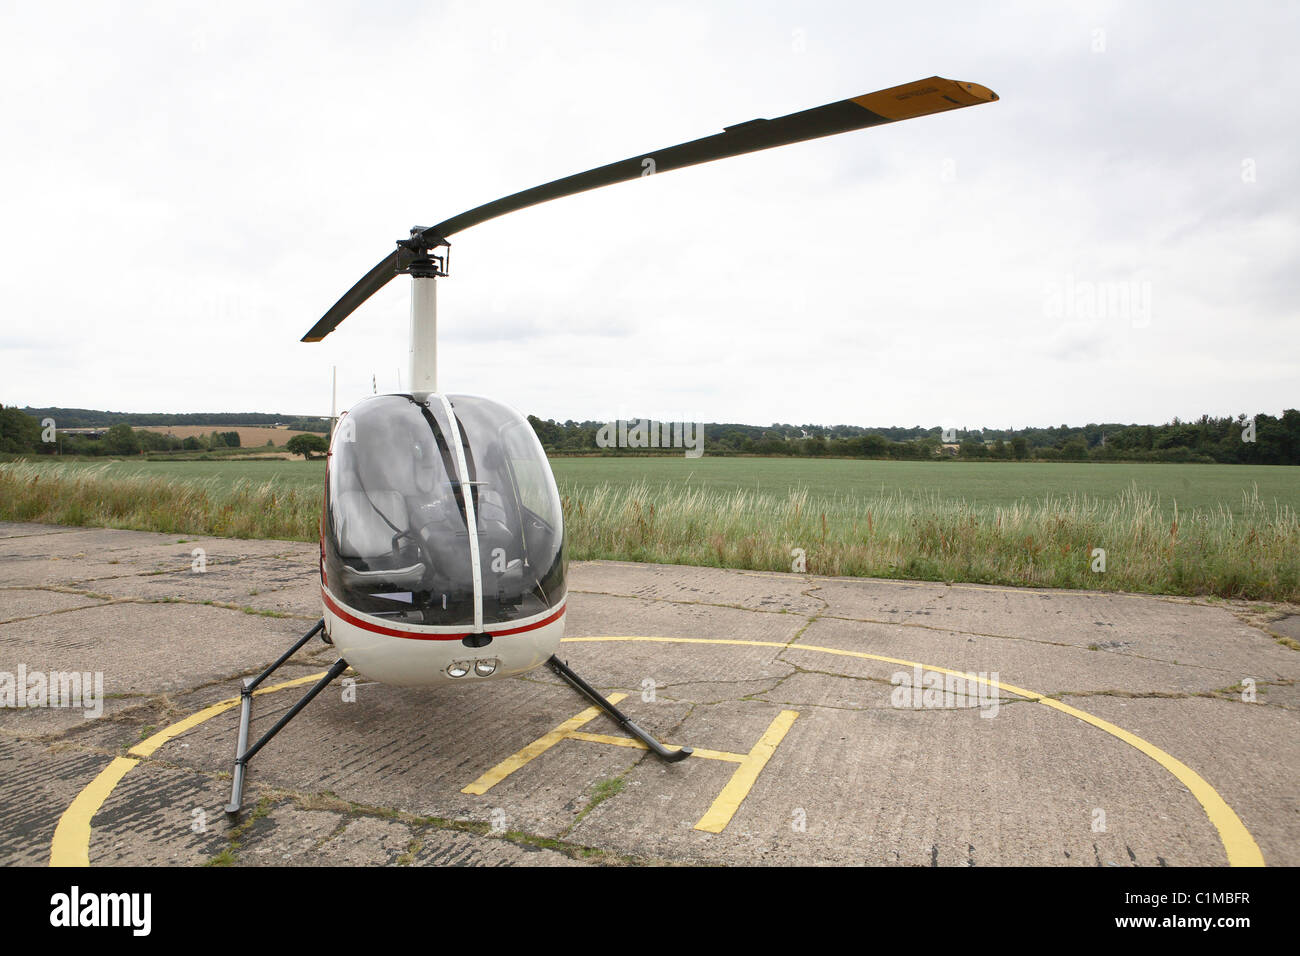 Robinson R22 Helicopter - Stock Image